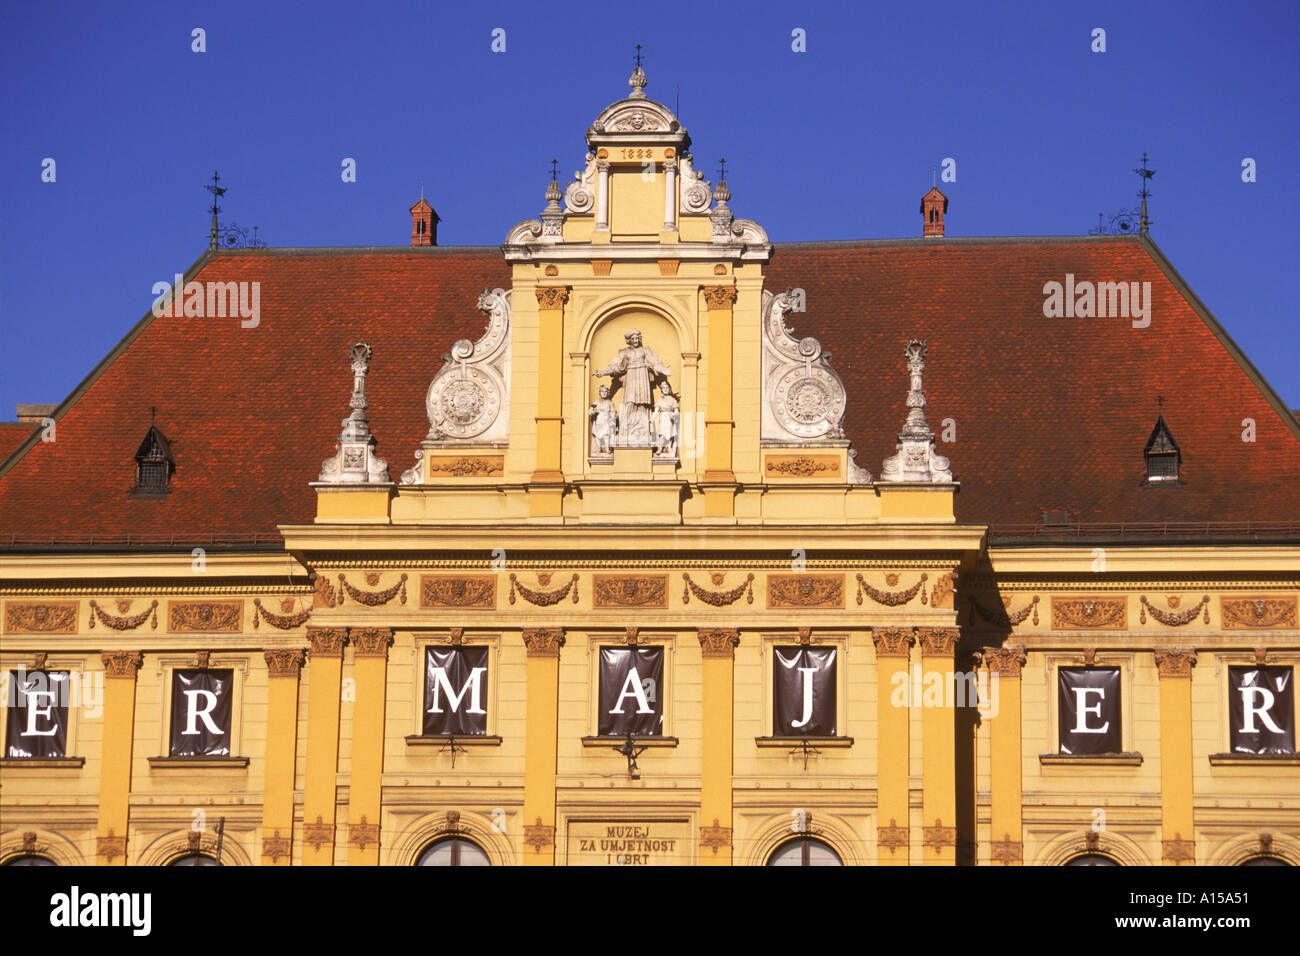 Close up of facade and roof of the building housing Arts and Crafts Museum in Zagreb Croatia K Gillham - Stock Image